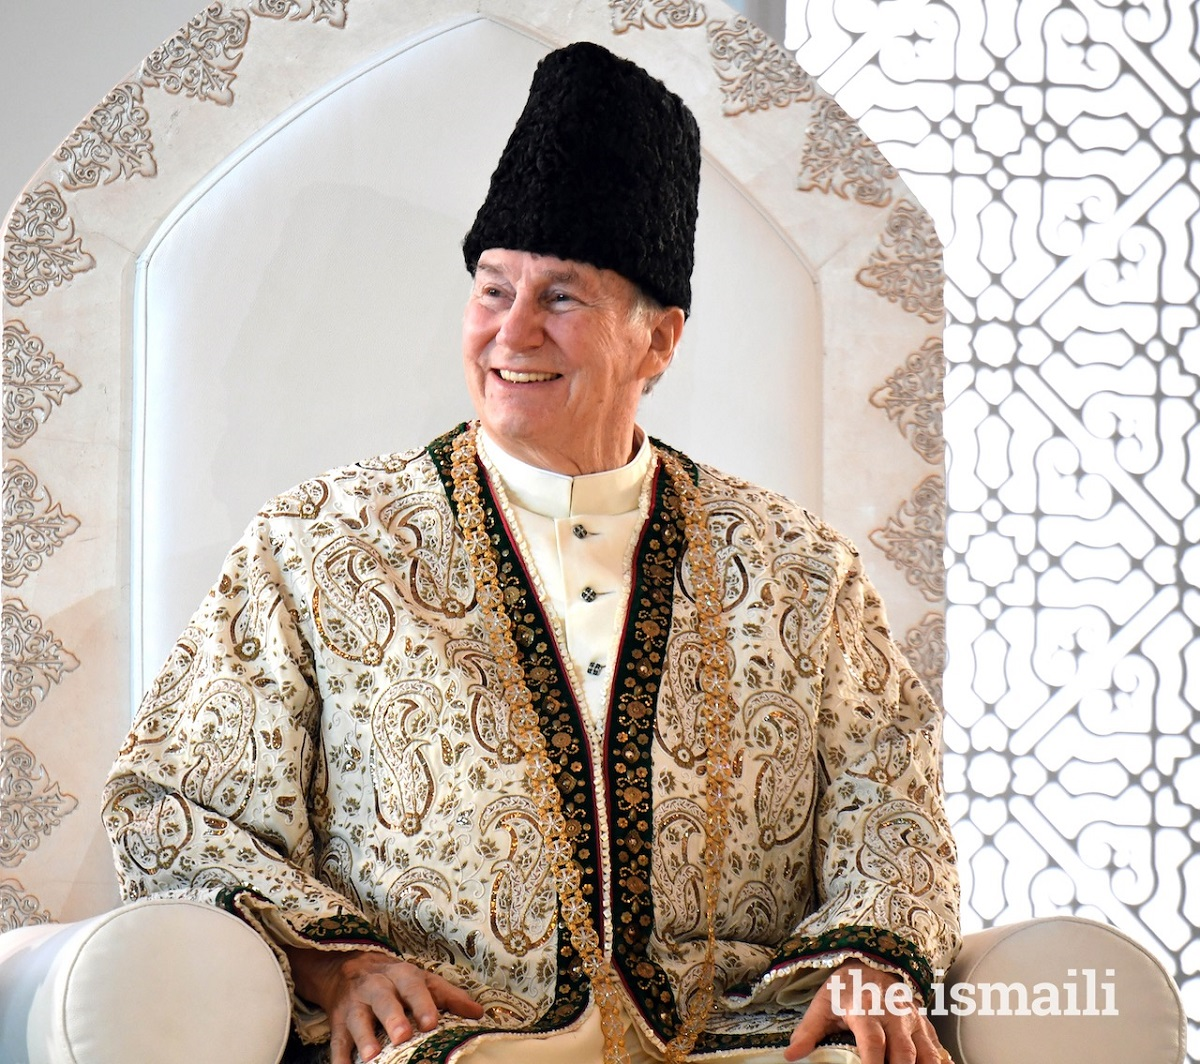 Mawlana Hazar Imam sends talika on the occasion of Navroz with special blessings for mushkil asan, and prayers for the Jamat's health and well-being